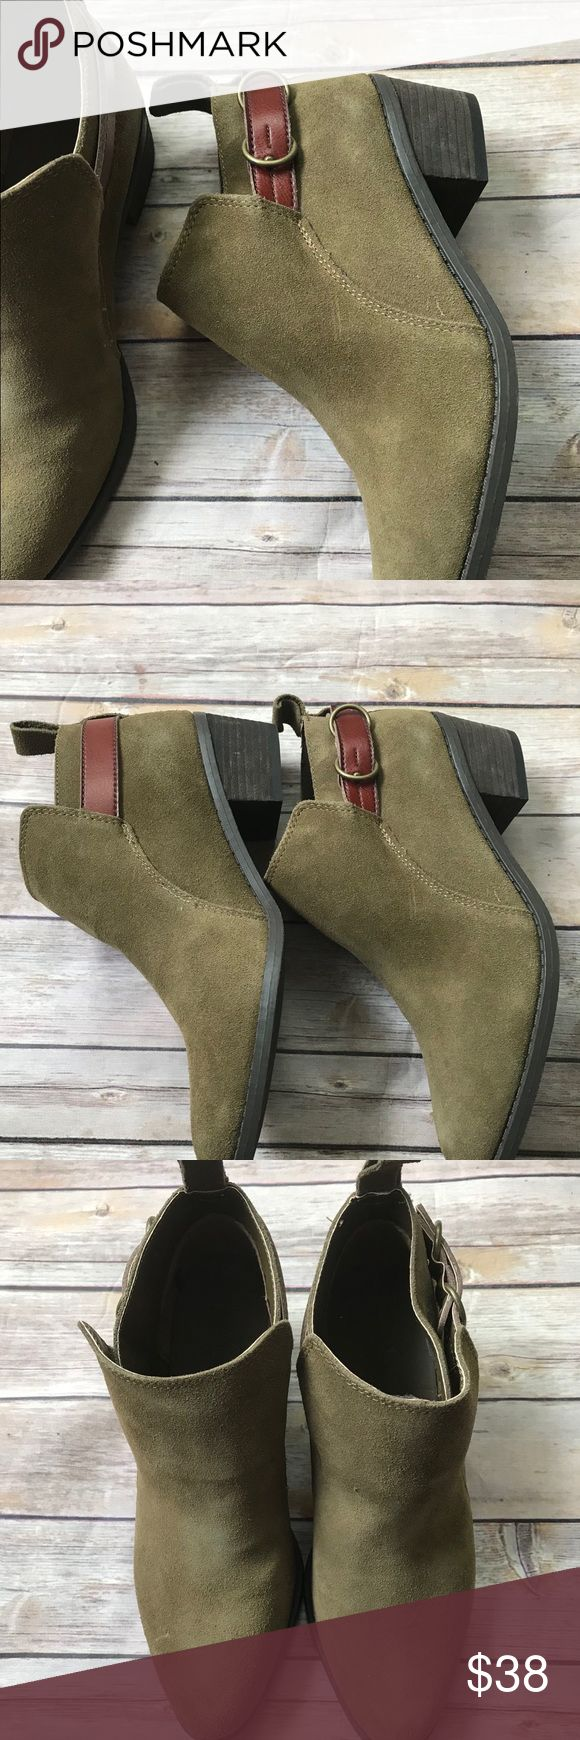 NWOT American Eagle Outfitters Buckle Strap Bootie Olive Green Boot Excellent New Condition Without Flaws American Eagle Outfitters Shoes Heeled Boots